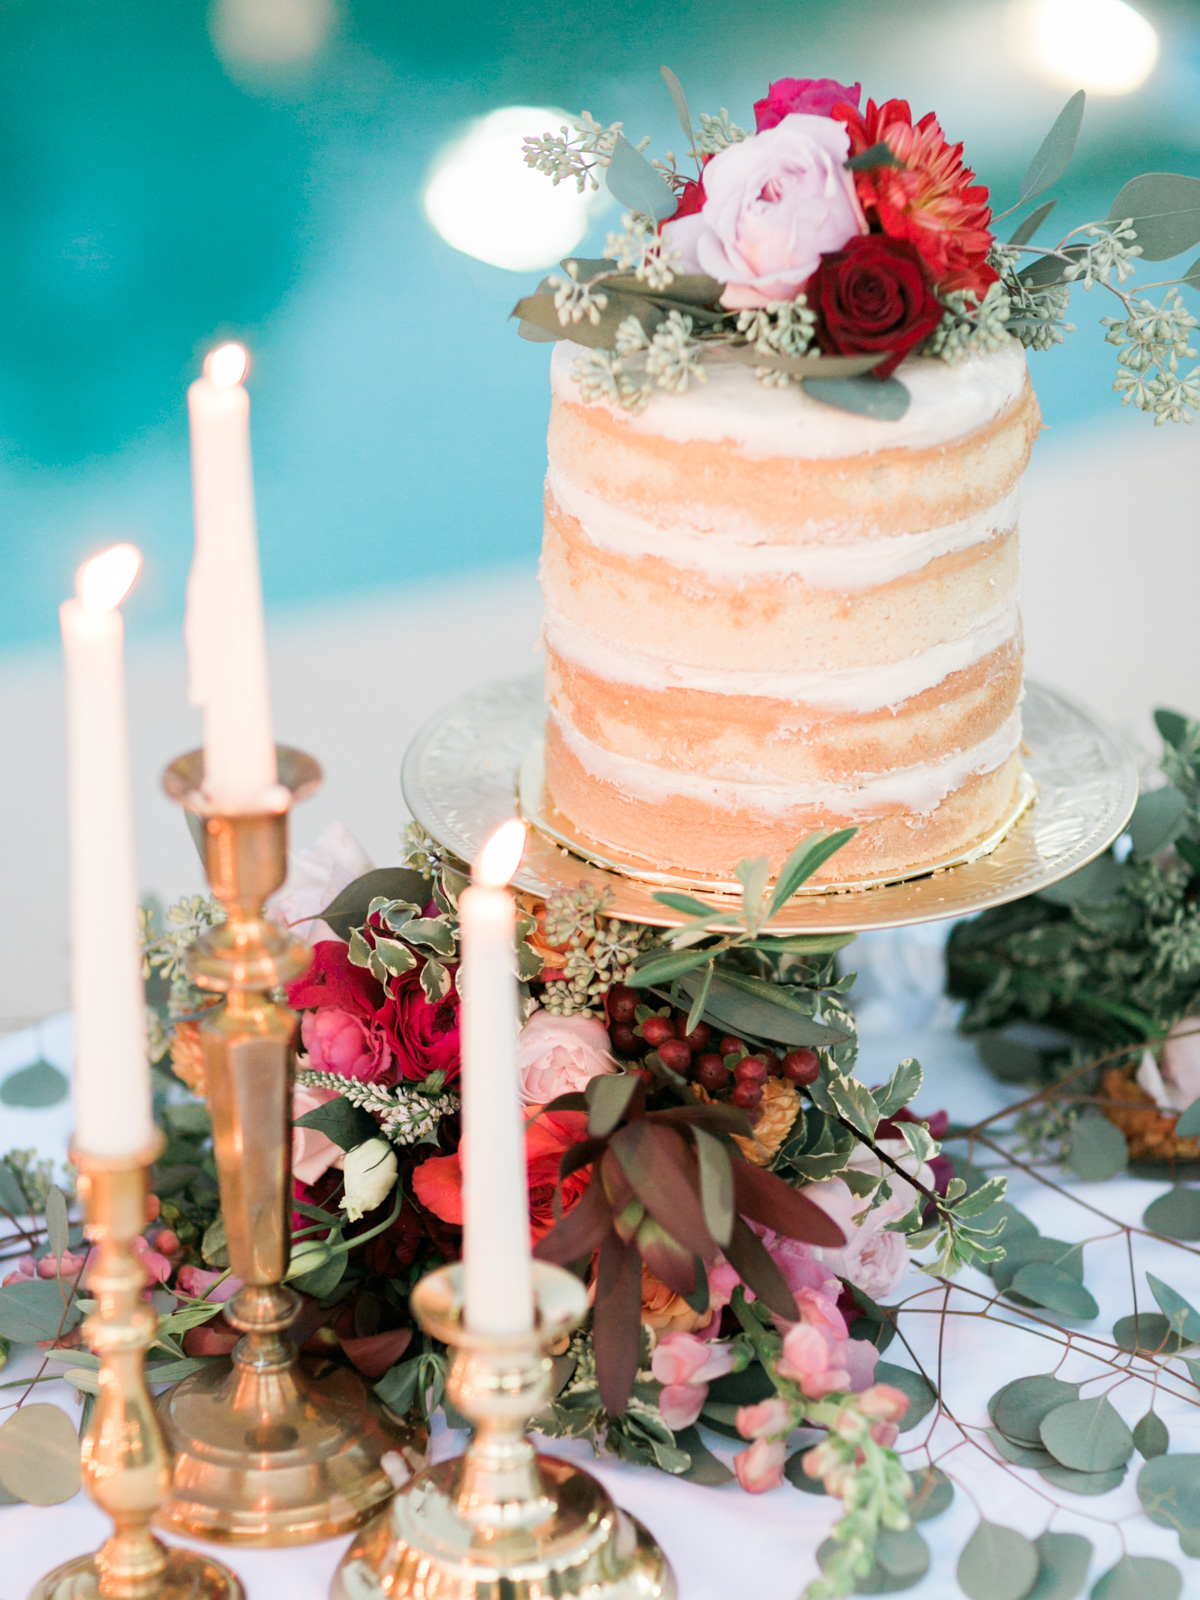 Gorgeous naked cake adorned with florals, surrounded by brass candlesticks